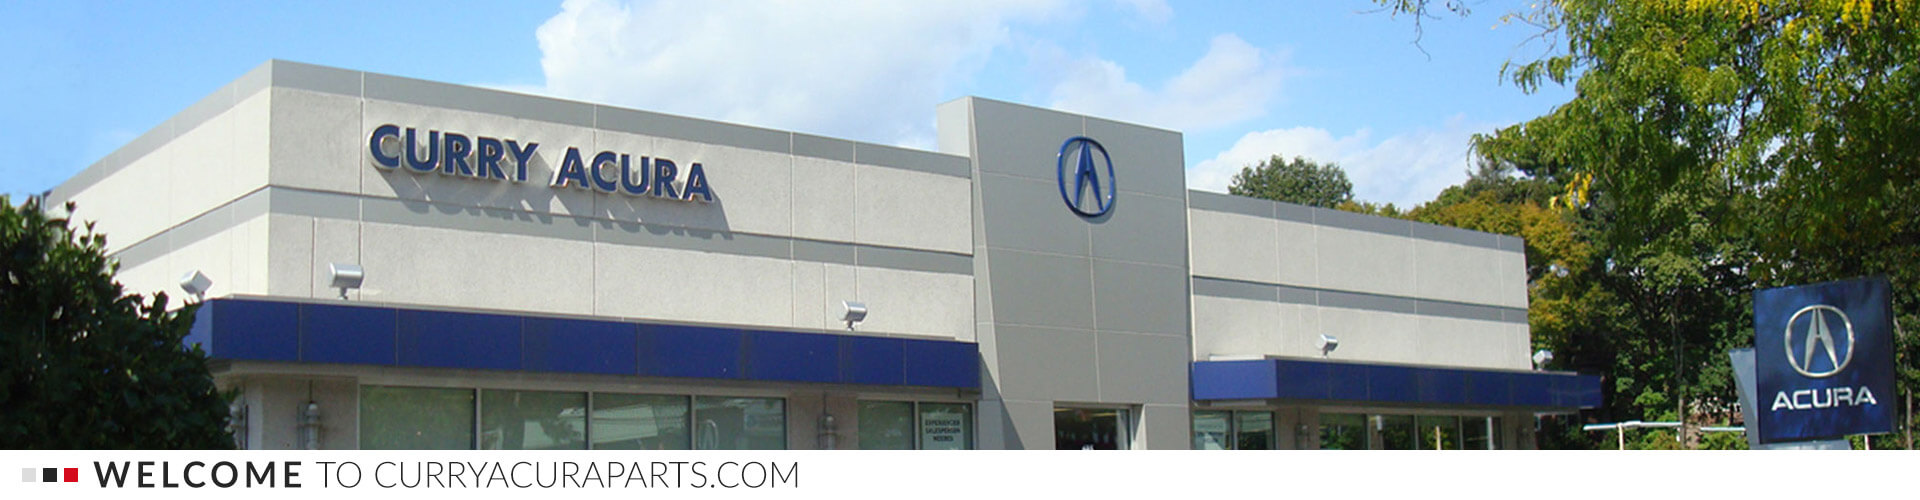 CURRY ACURA Genuine OEM Acura Parts Accessories FREE - Park ave acura parts